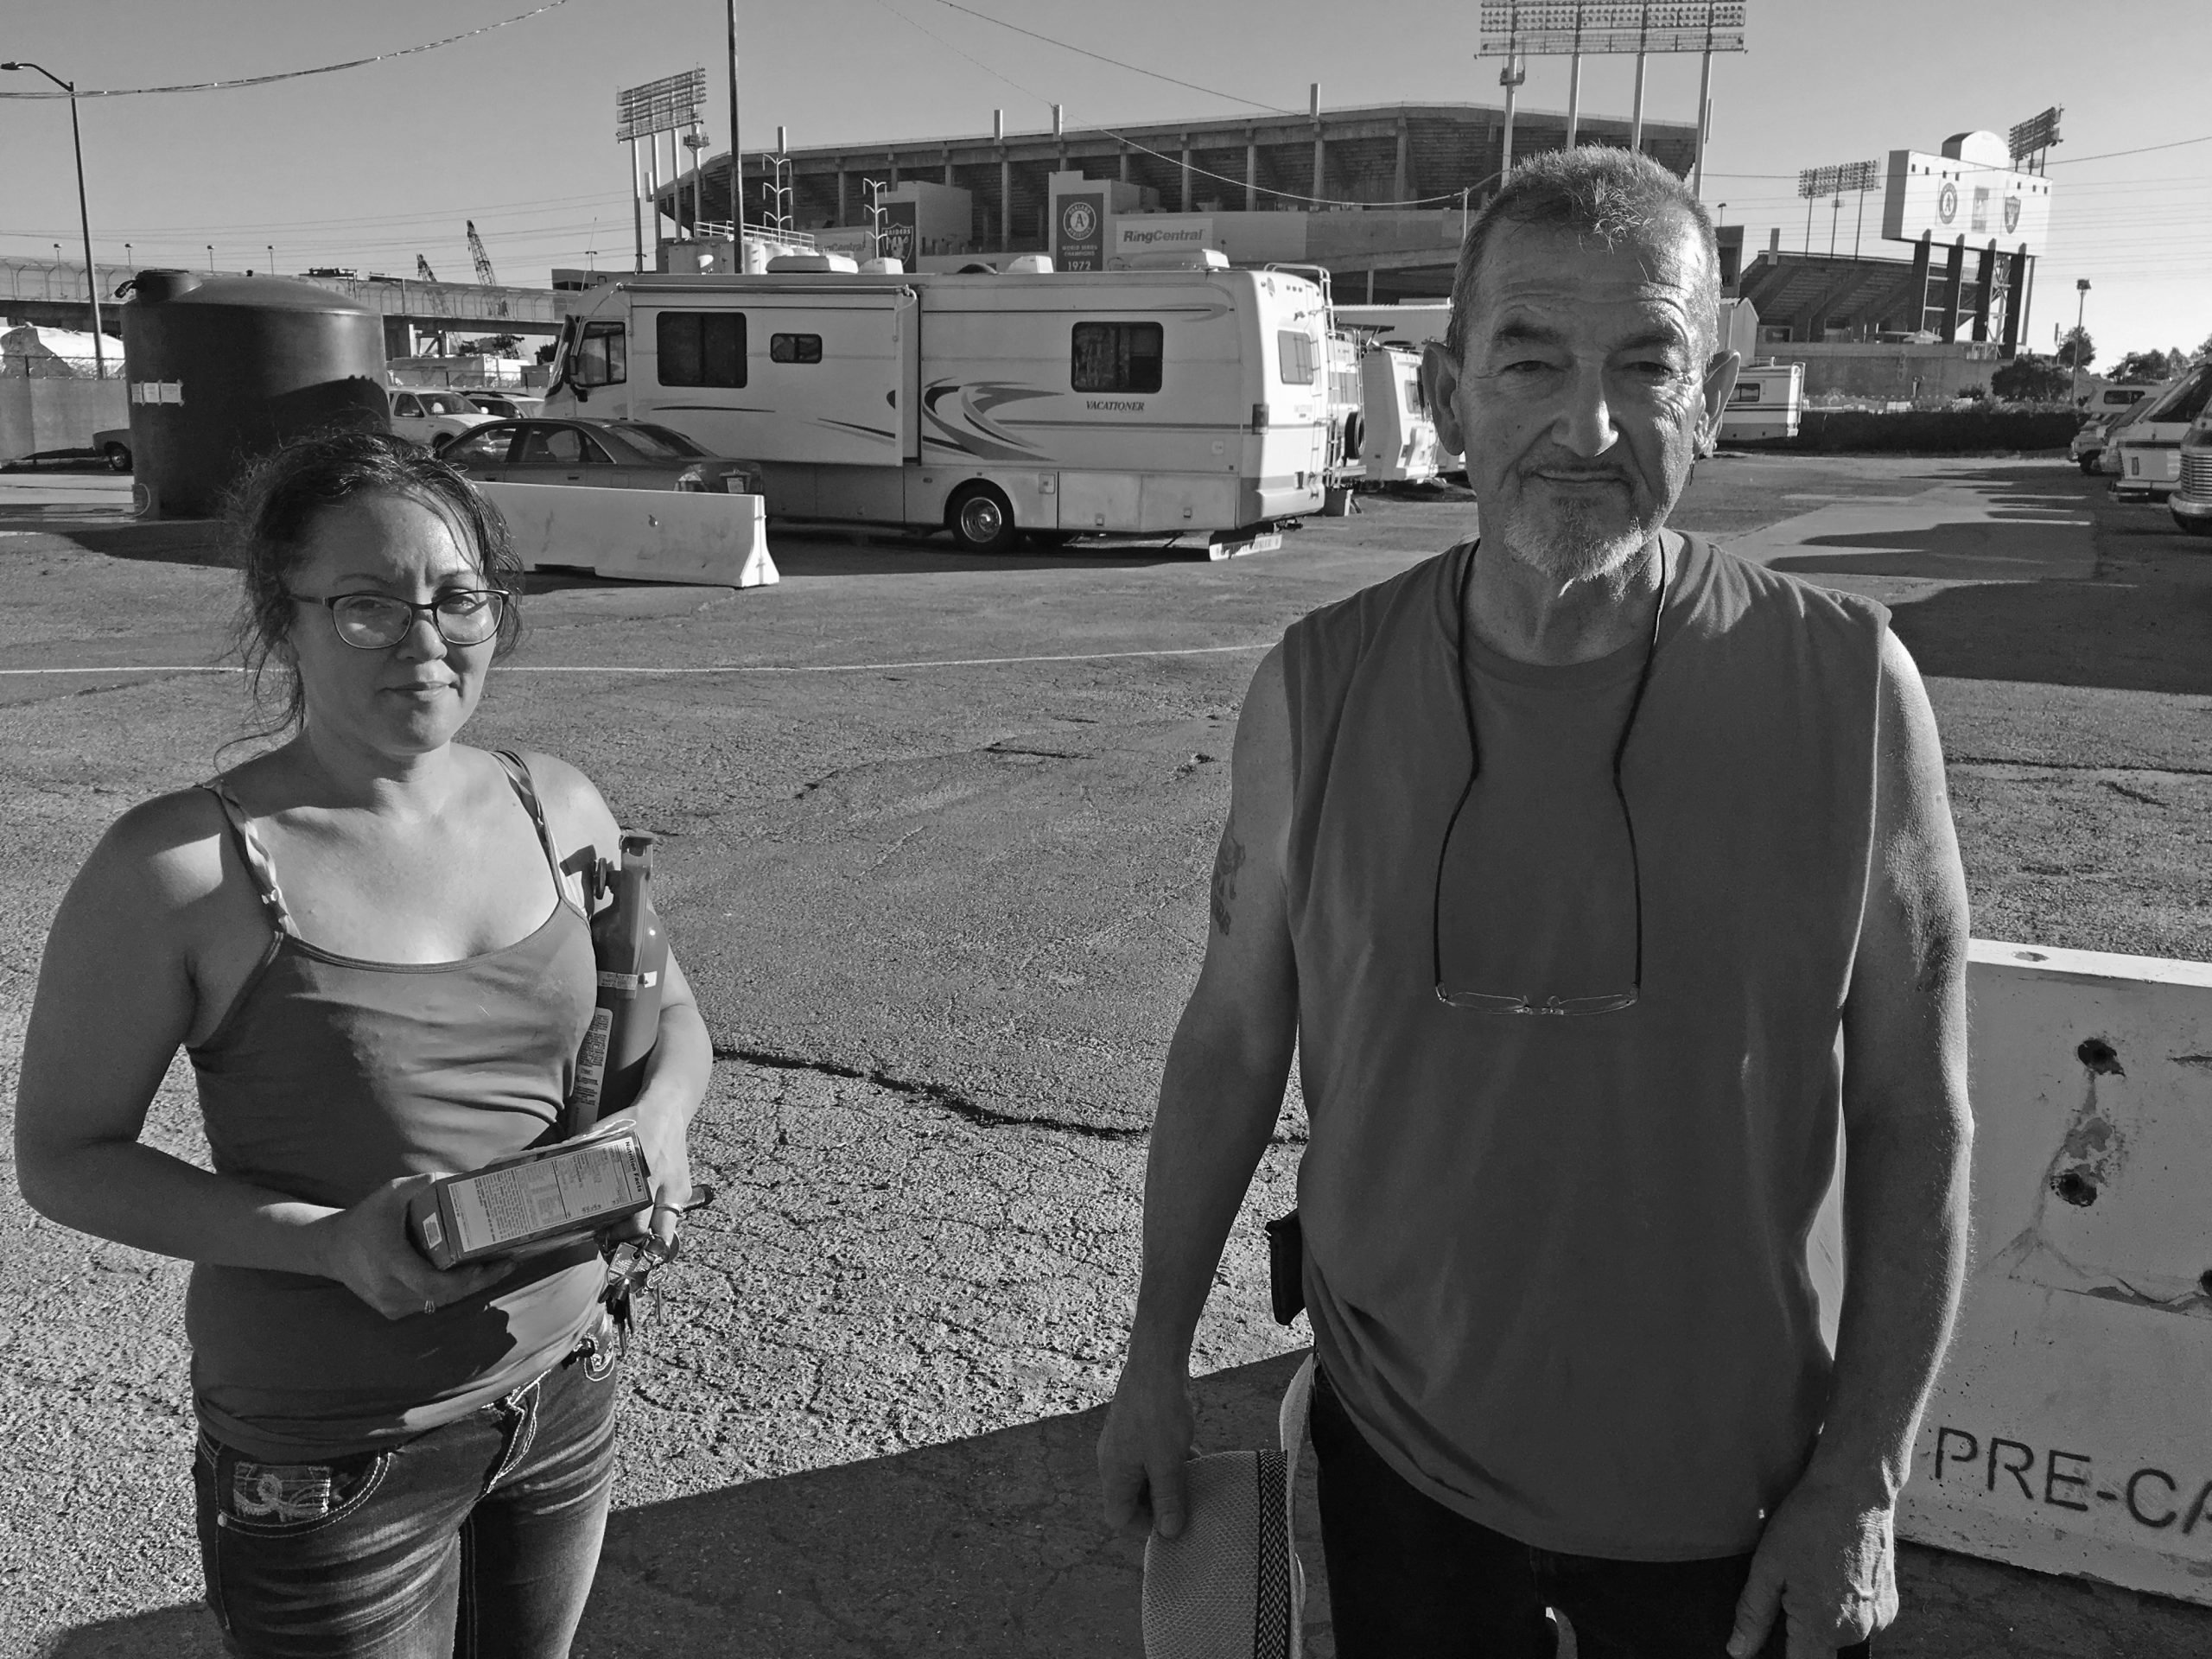 Jade Joga (left) and Jorge Peña (right) at the RV site.